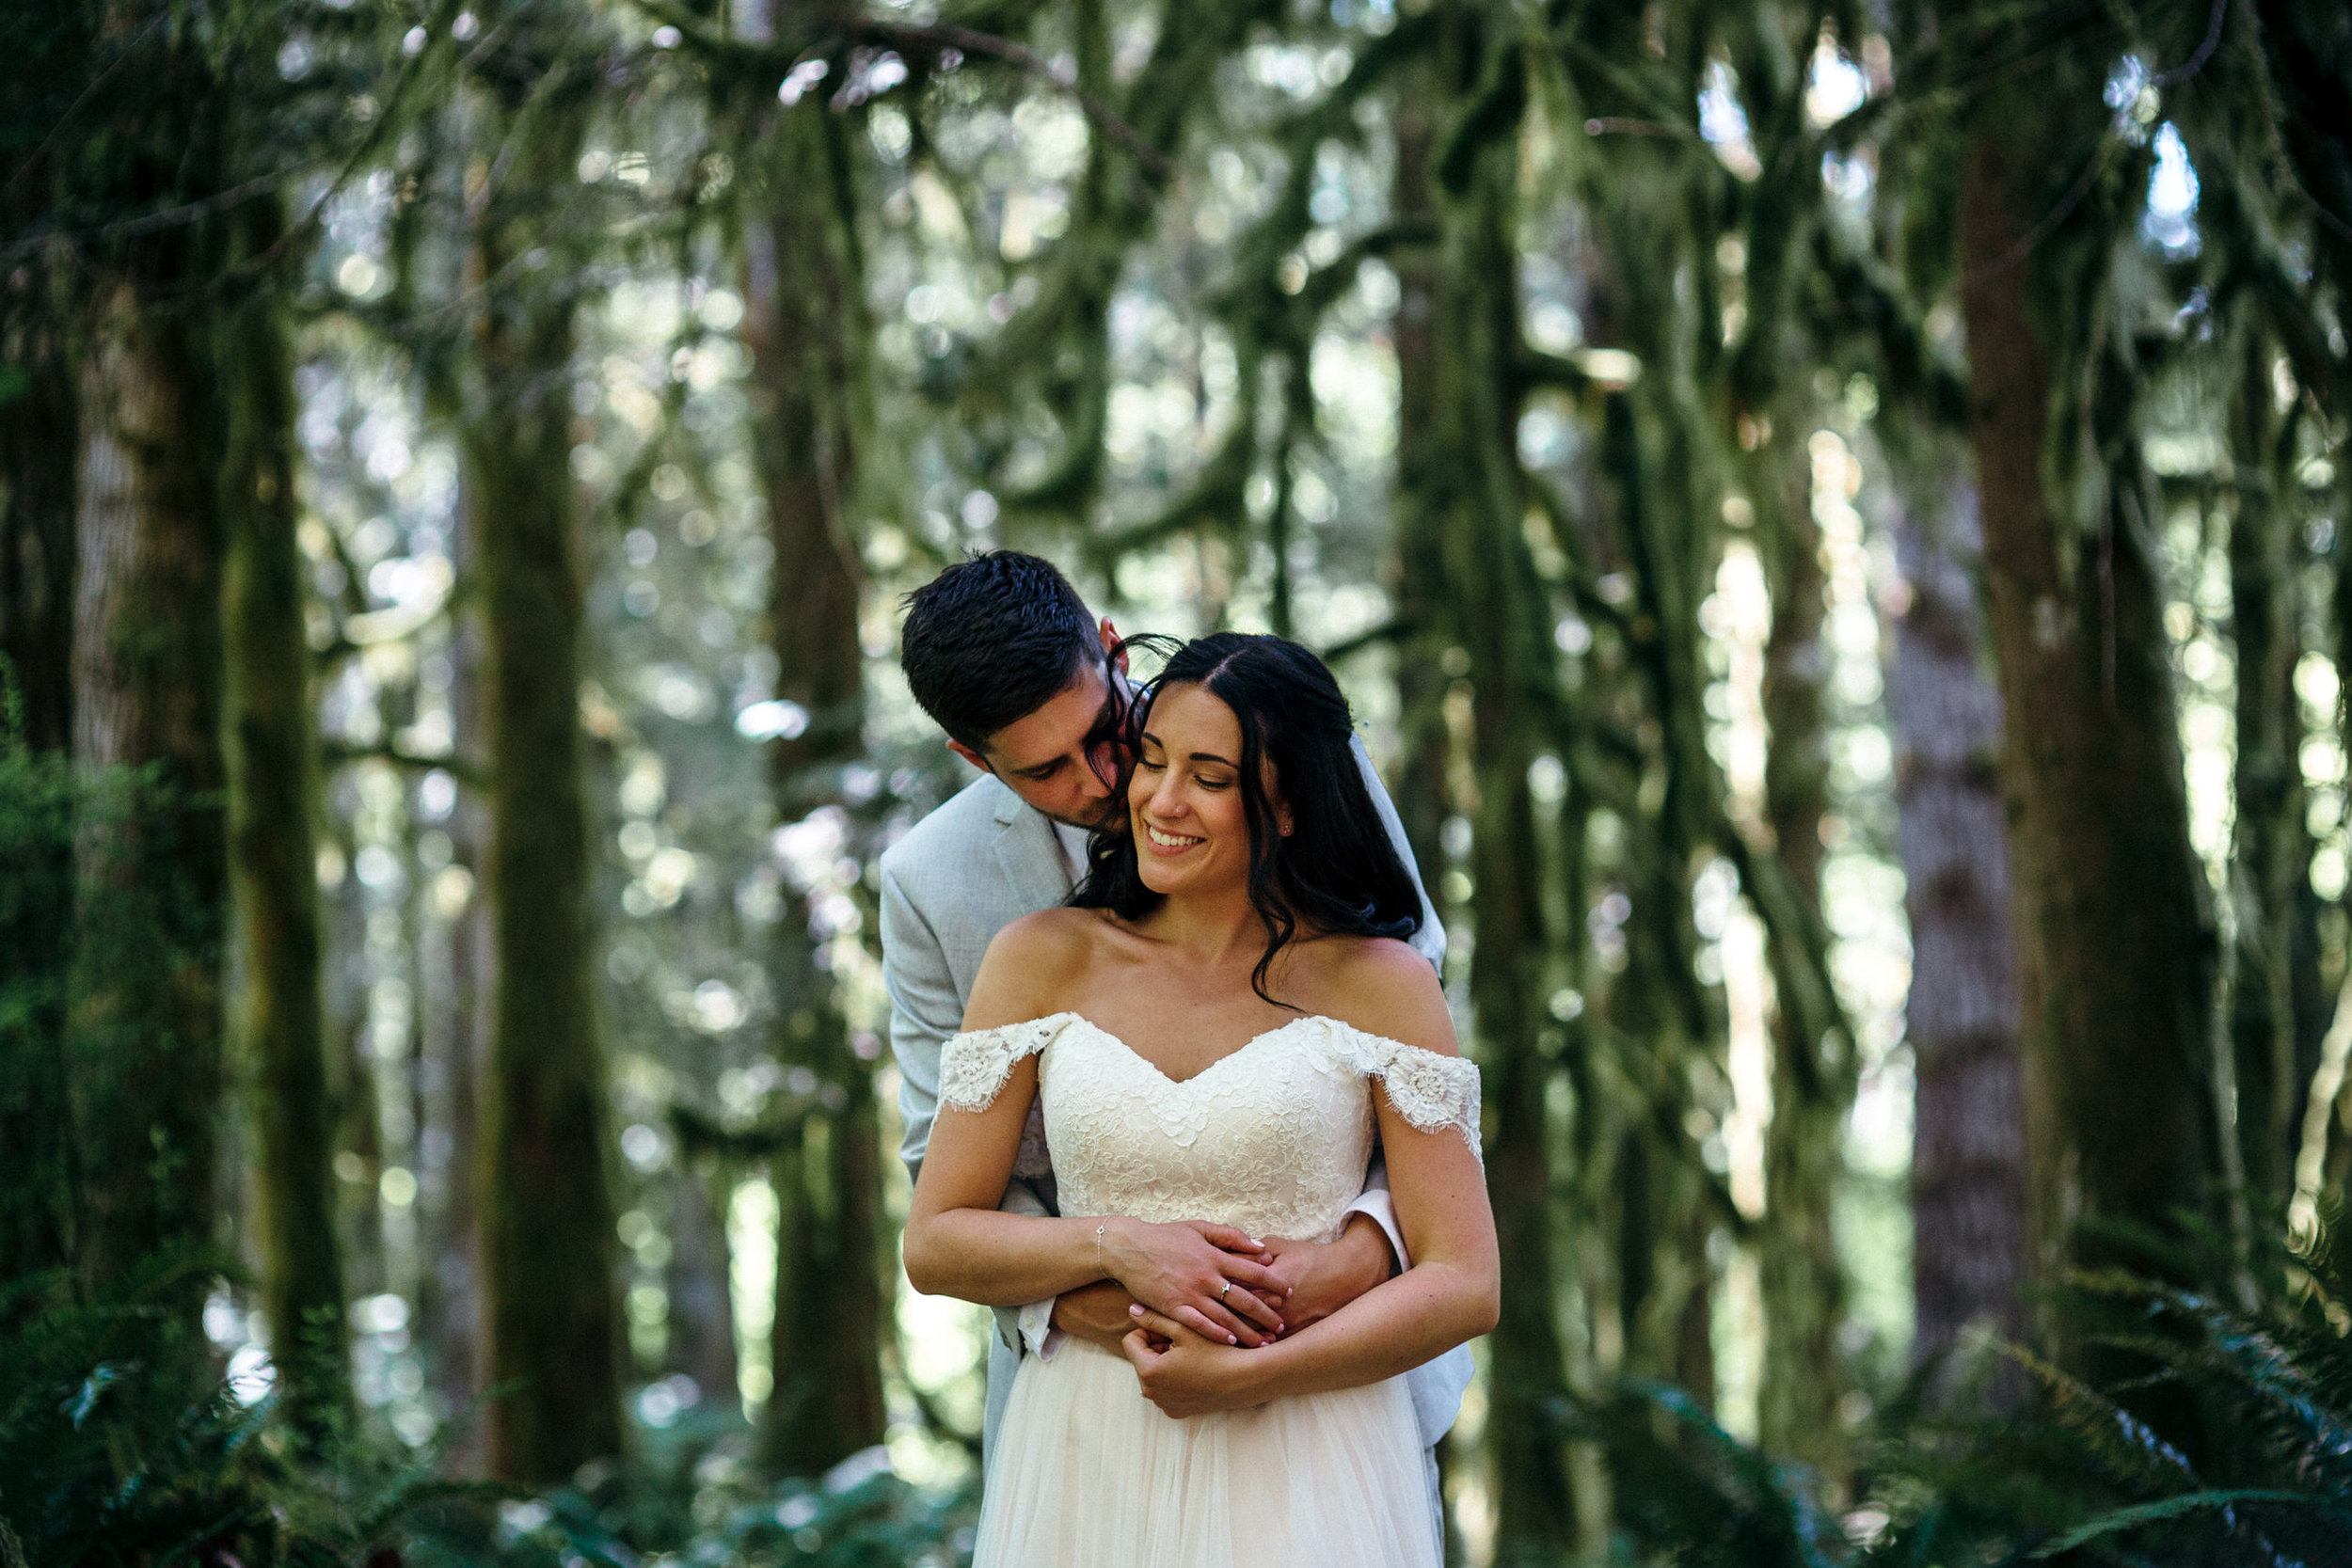 MT Hood Wildwood elopement wedding oregon portland photography0078.JPG